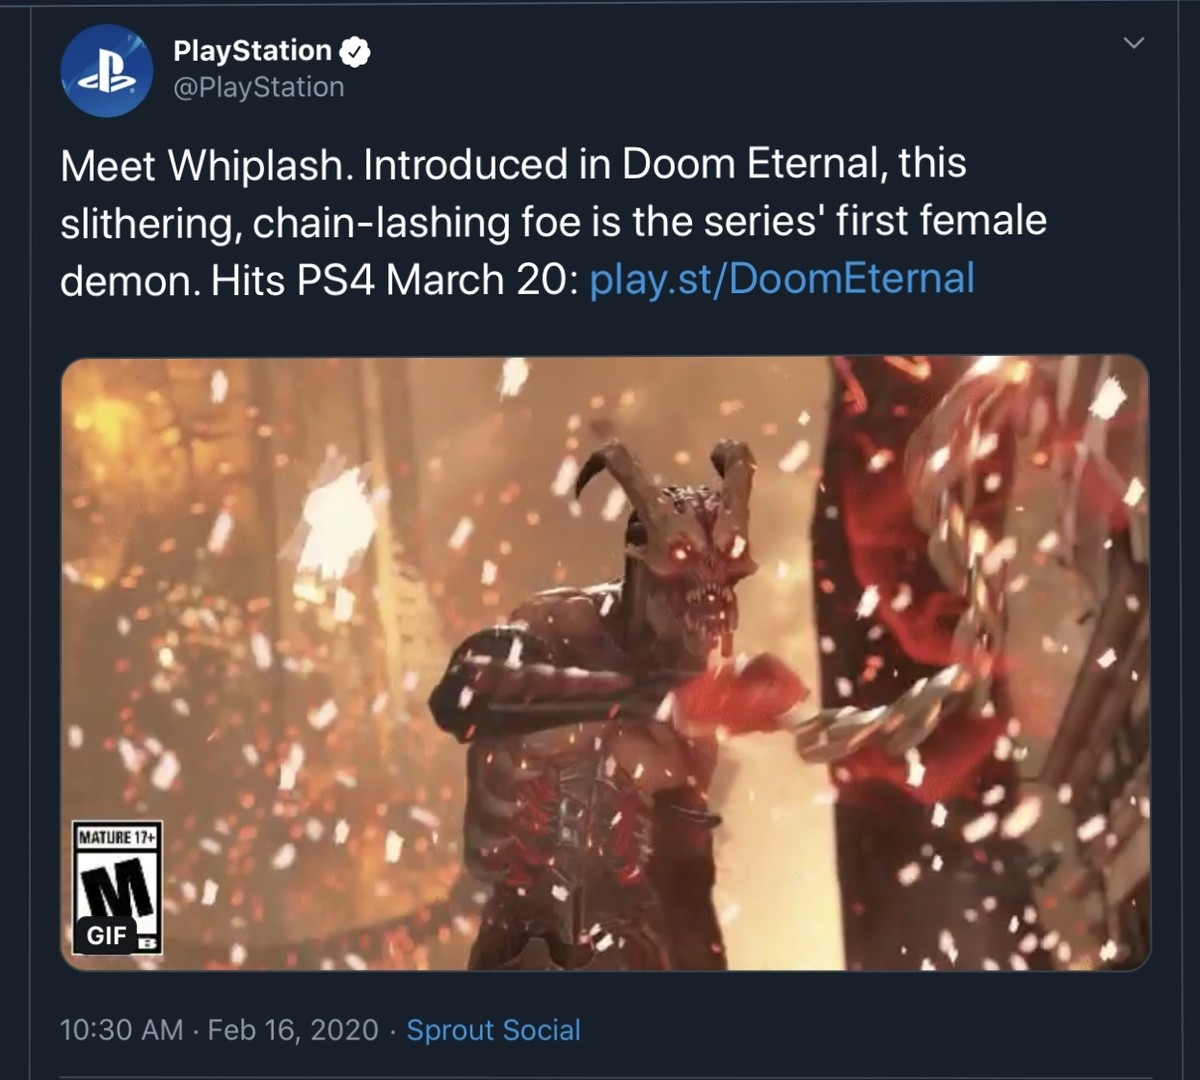 Sony is starving for attention. .. Demons don't sexually reproduce, what is the point of giving them gender if not to pander the SJWs these days